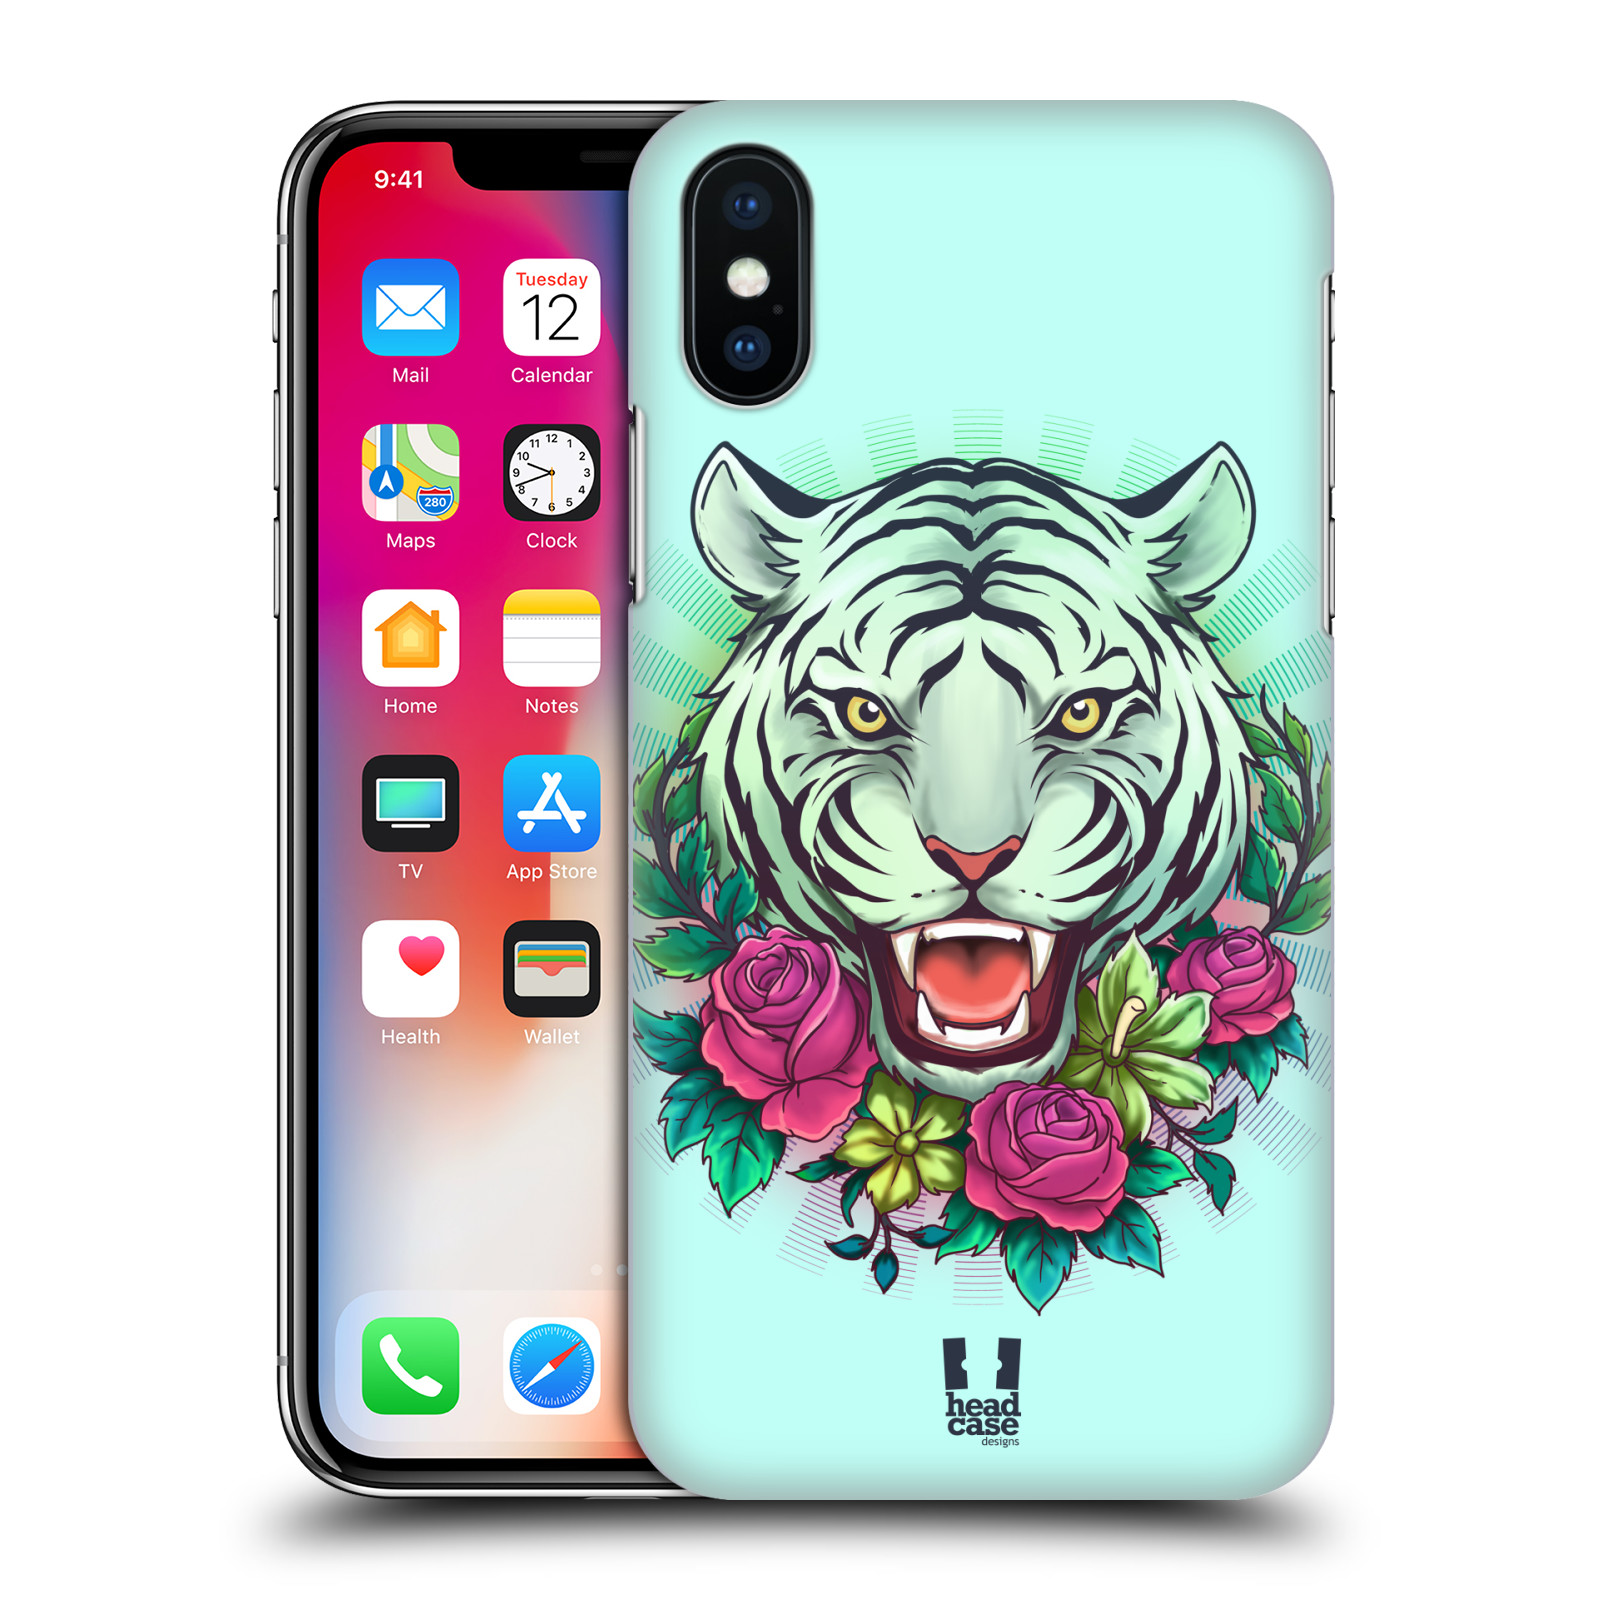 HEAD-CASE-DESIGNS-FLORA-AND-FAUNA-HARD-BACK-CASE-FOR-APPLE-iPHONE-X